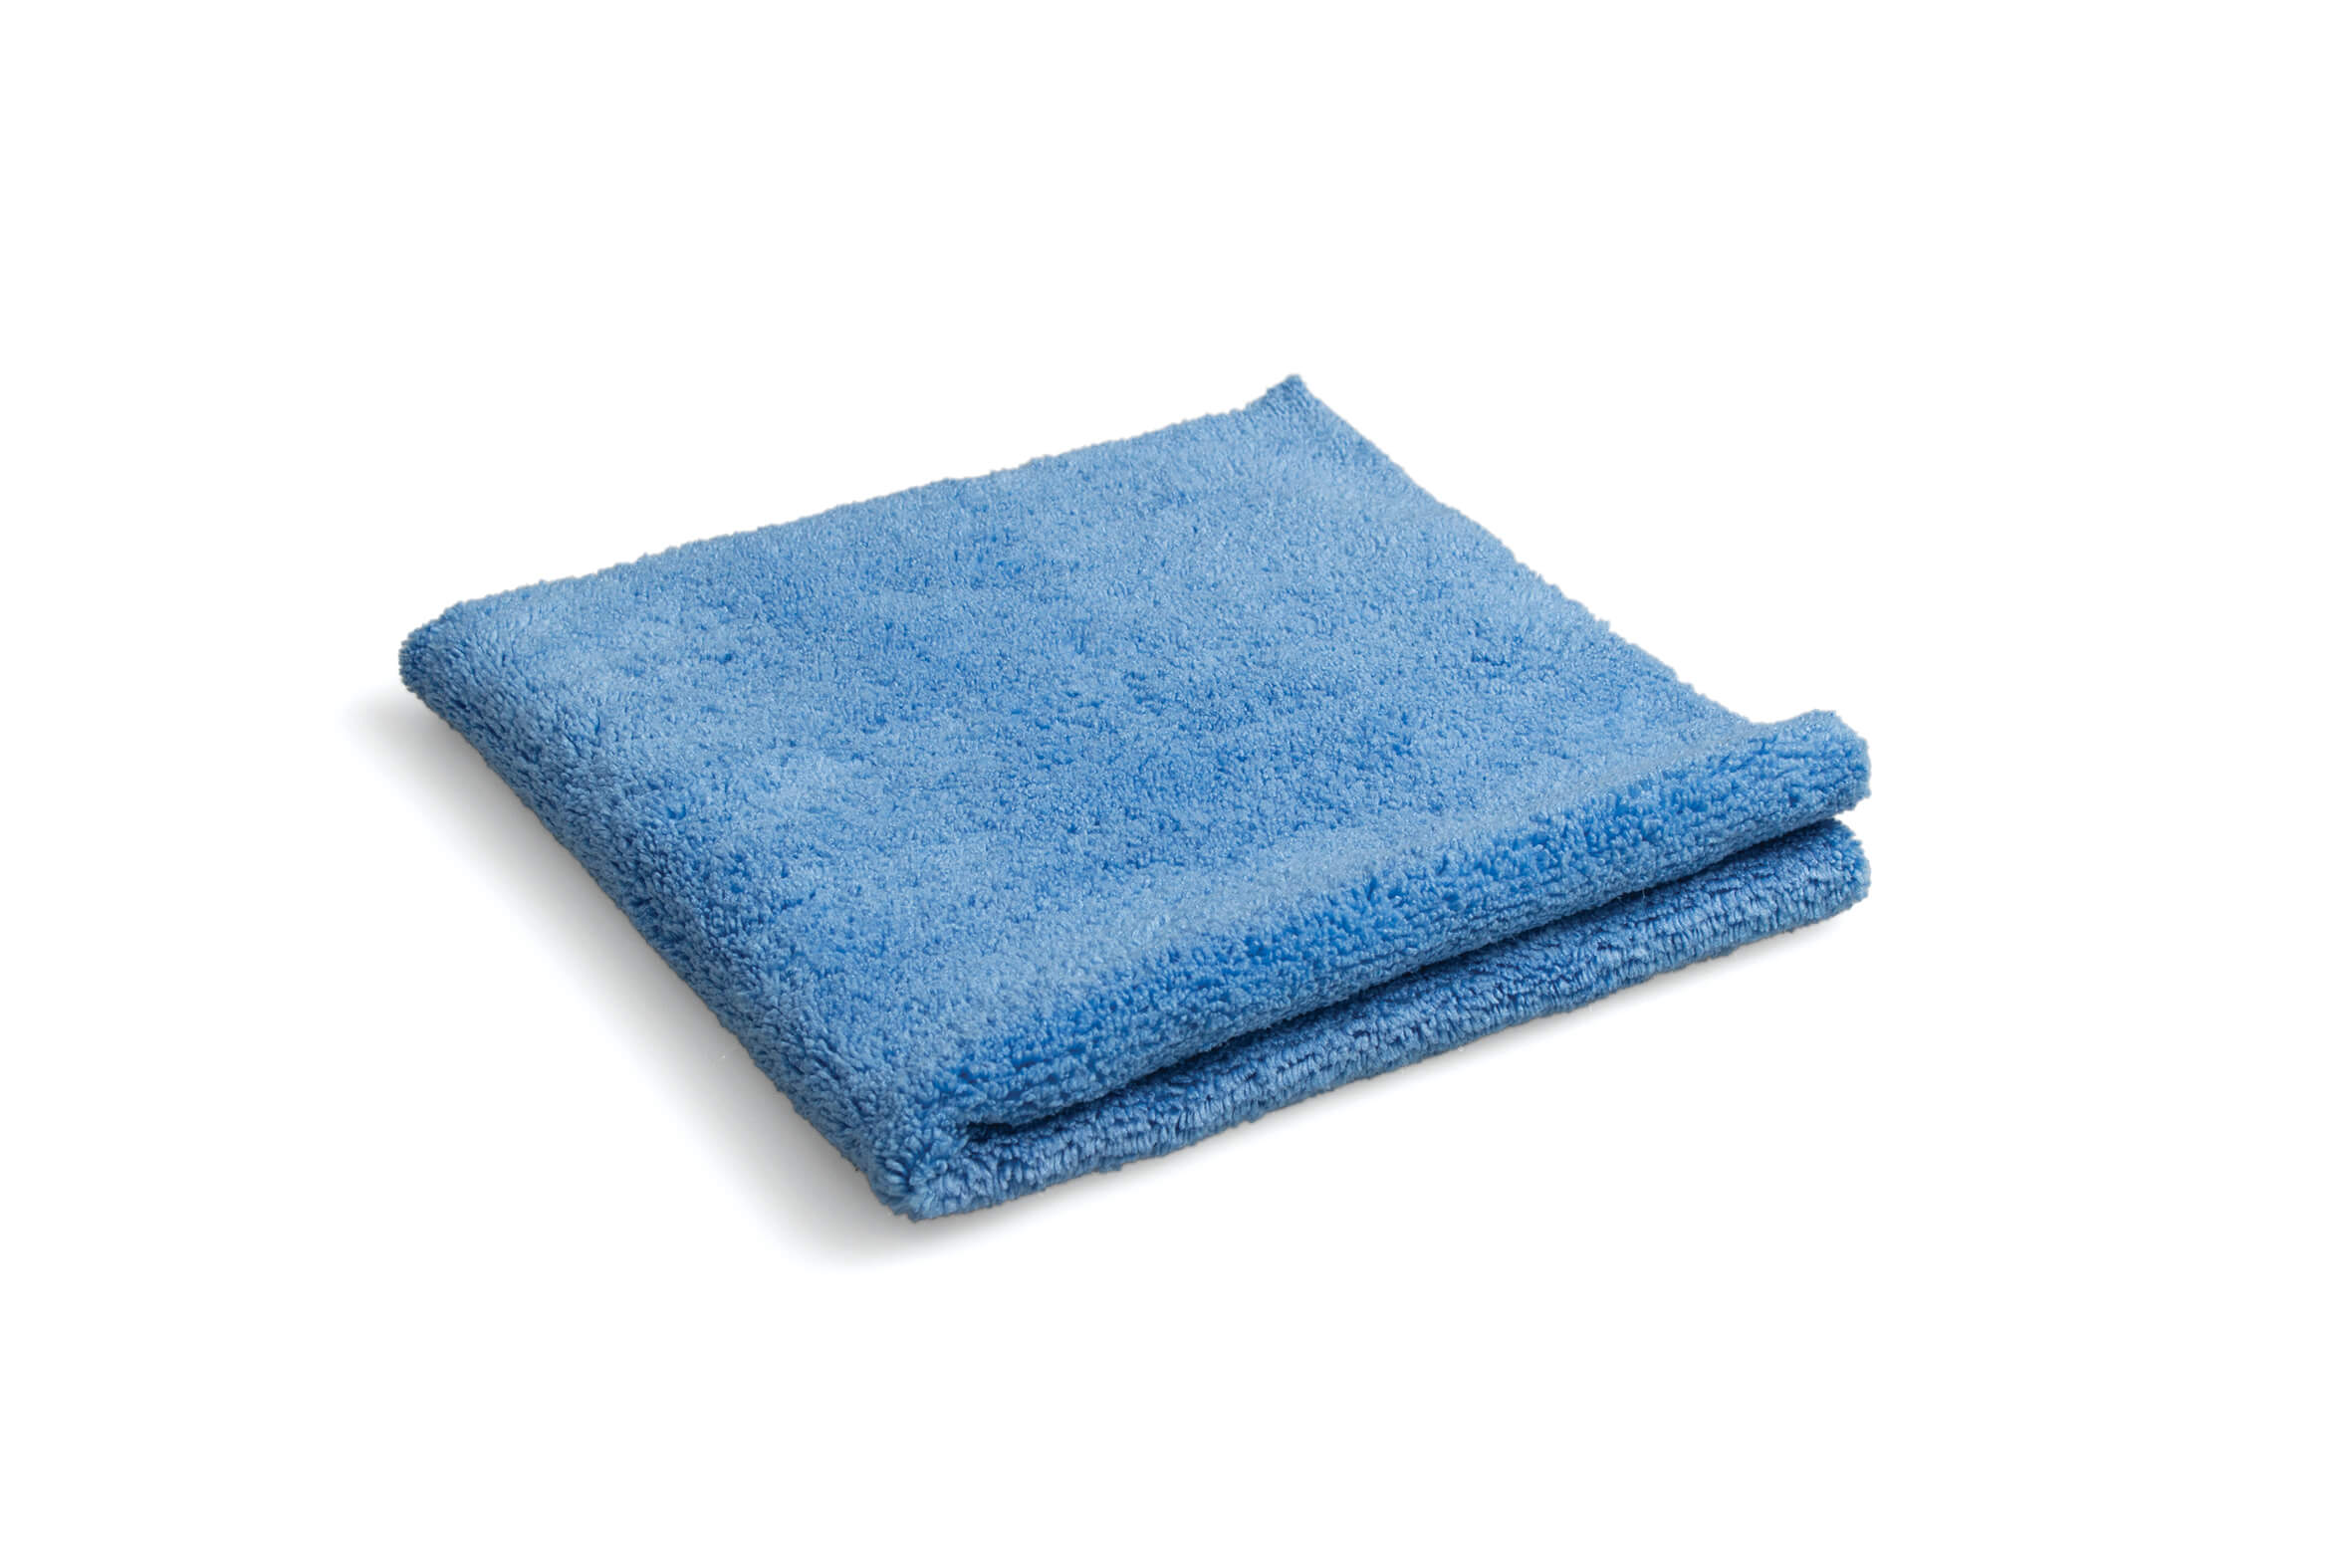 Laser Polish Blue Super-Soft Microfiber Cloth